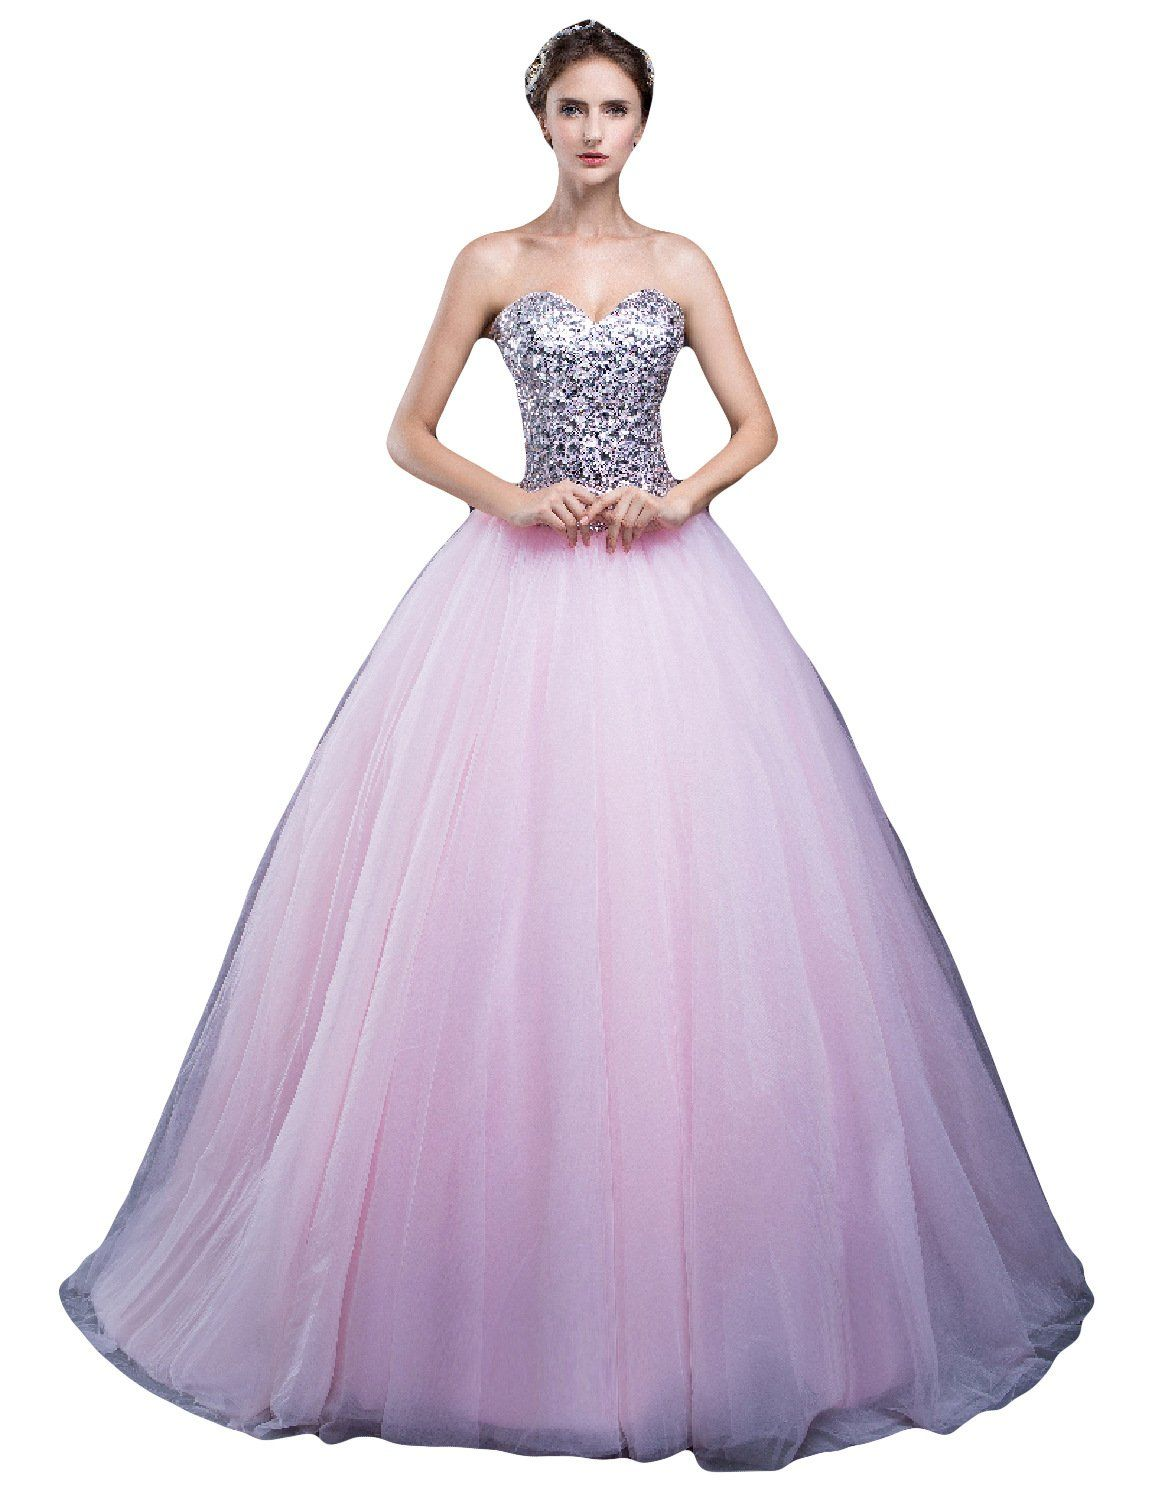 Lmbridal womenus beading sweetheart prom dress ball gown quinceanera